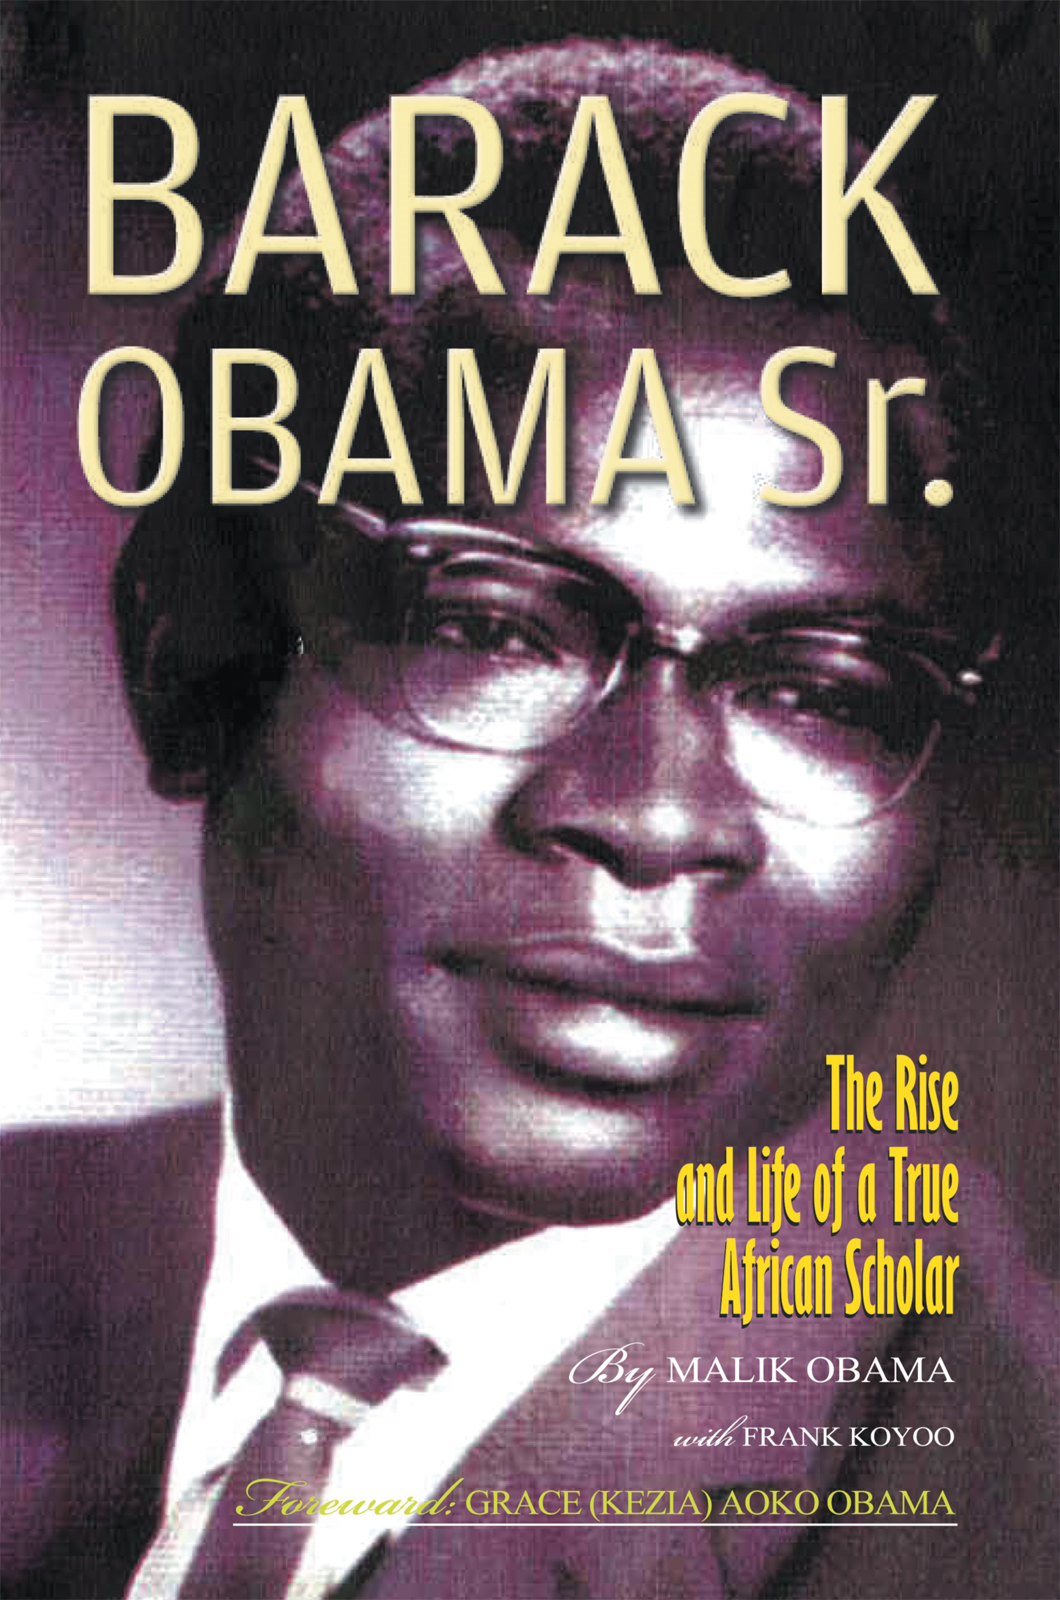 Barack Obama Sr. By: Abon'go Malik Obama & Frank Koyoo